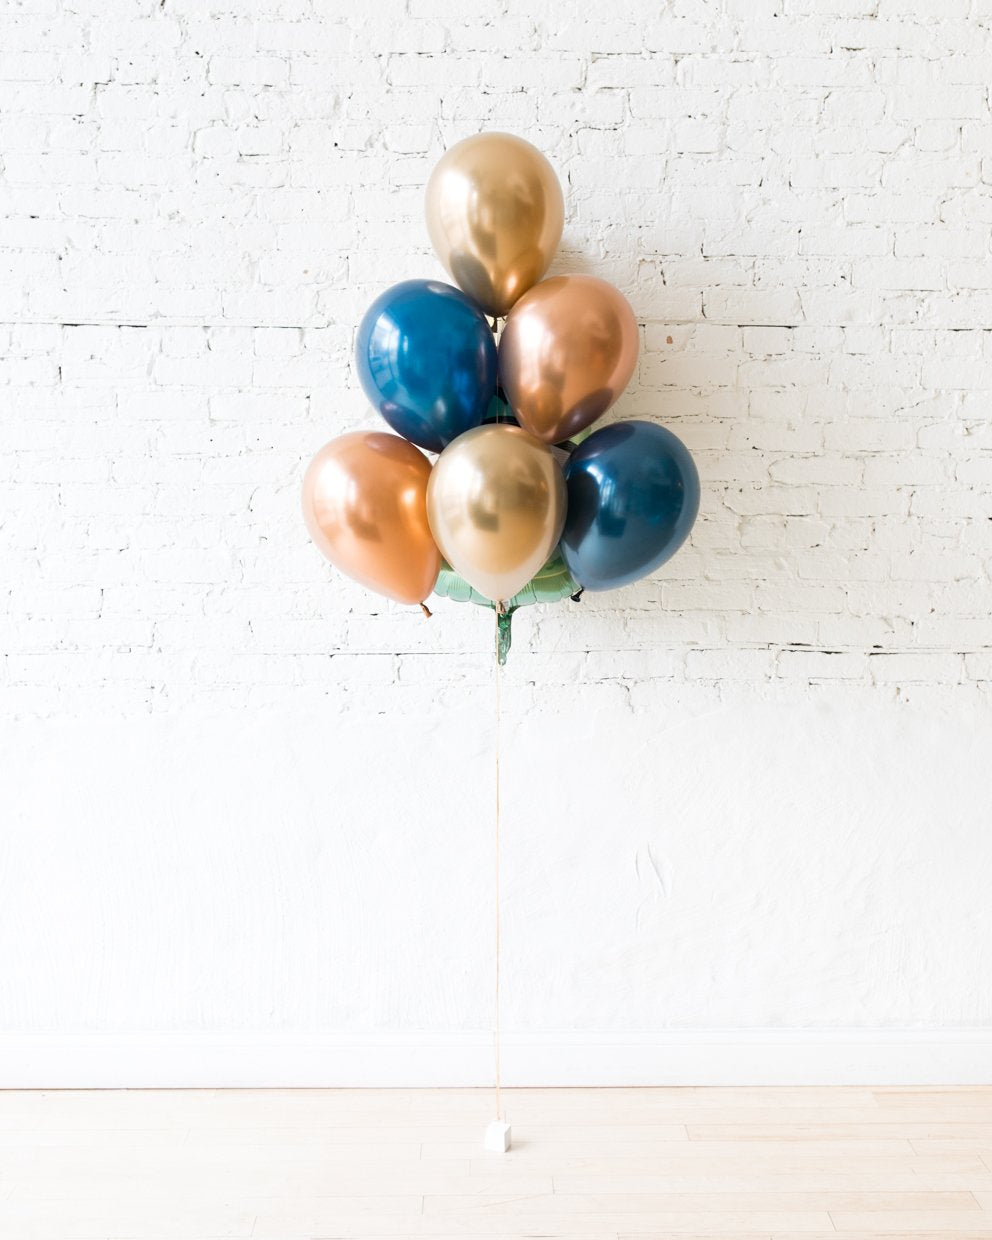 GIFT-Gold, Navy and Copper Palette Champagne Bottle Foil and 11in Balloons - bouquet of 7